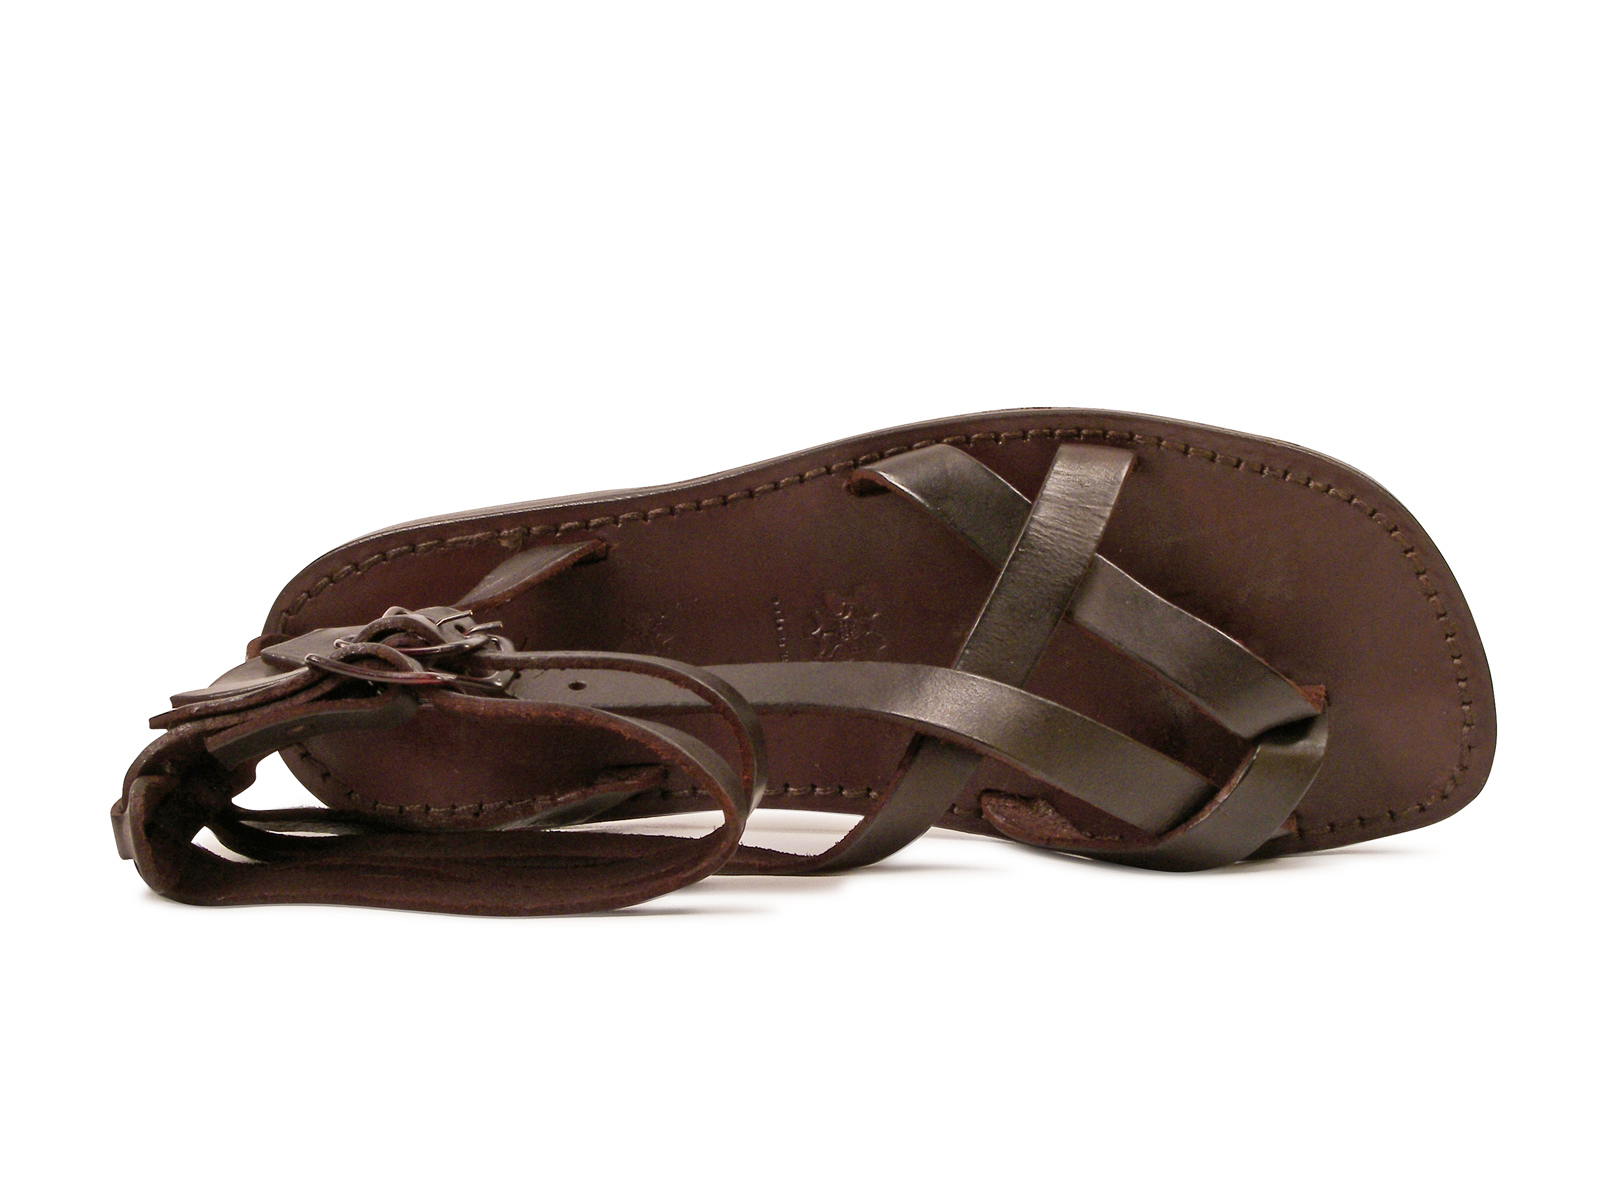 48f42f2c38d15 Brown men s ankle strap gladiator sandals Handmade in Italy